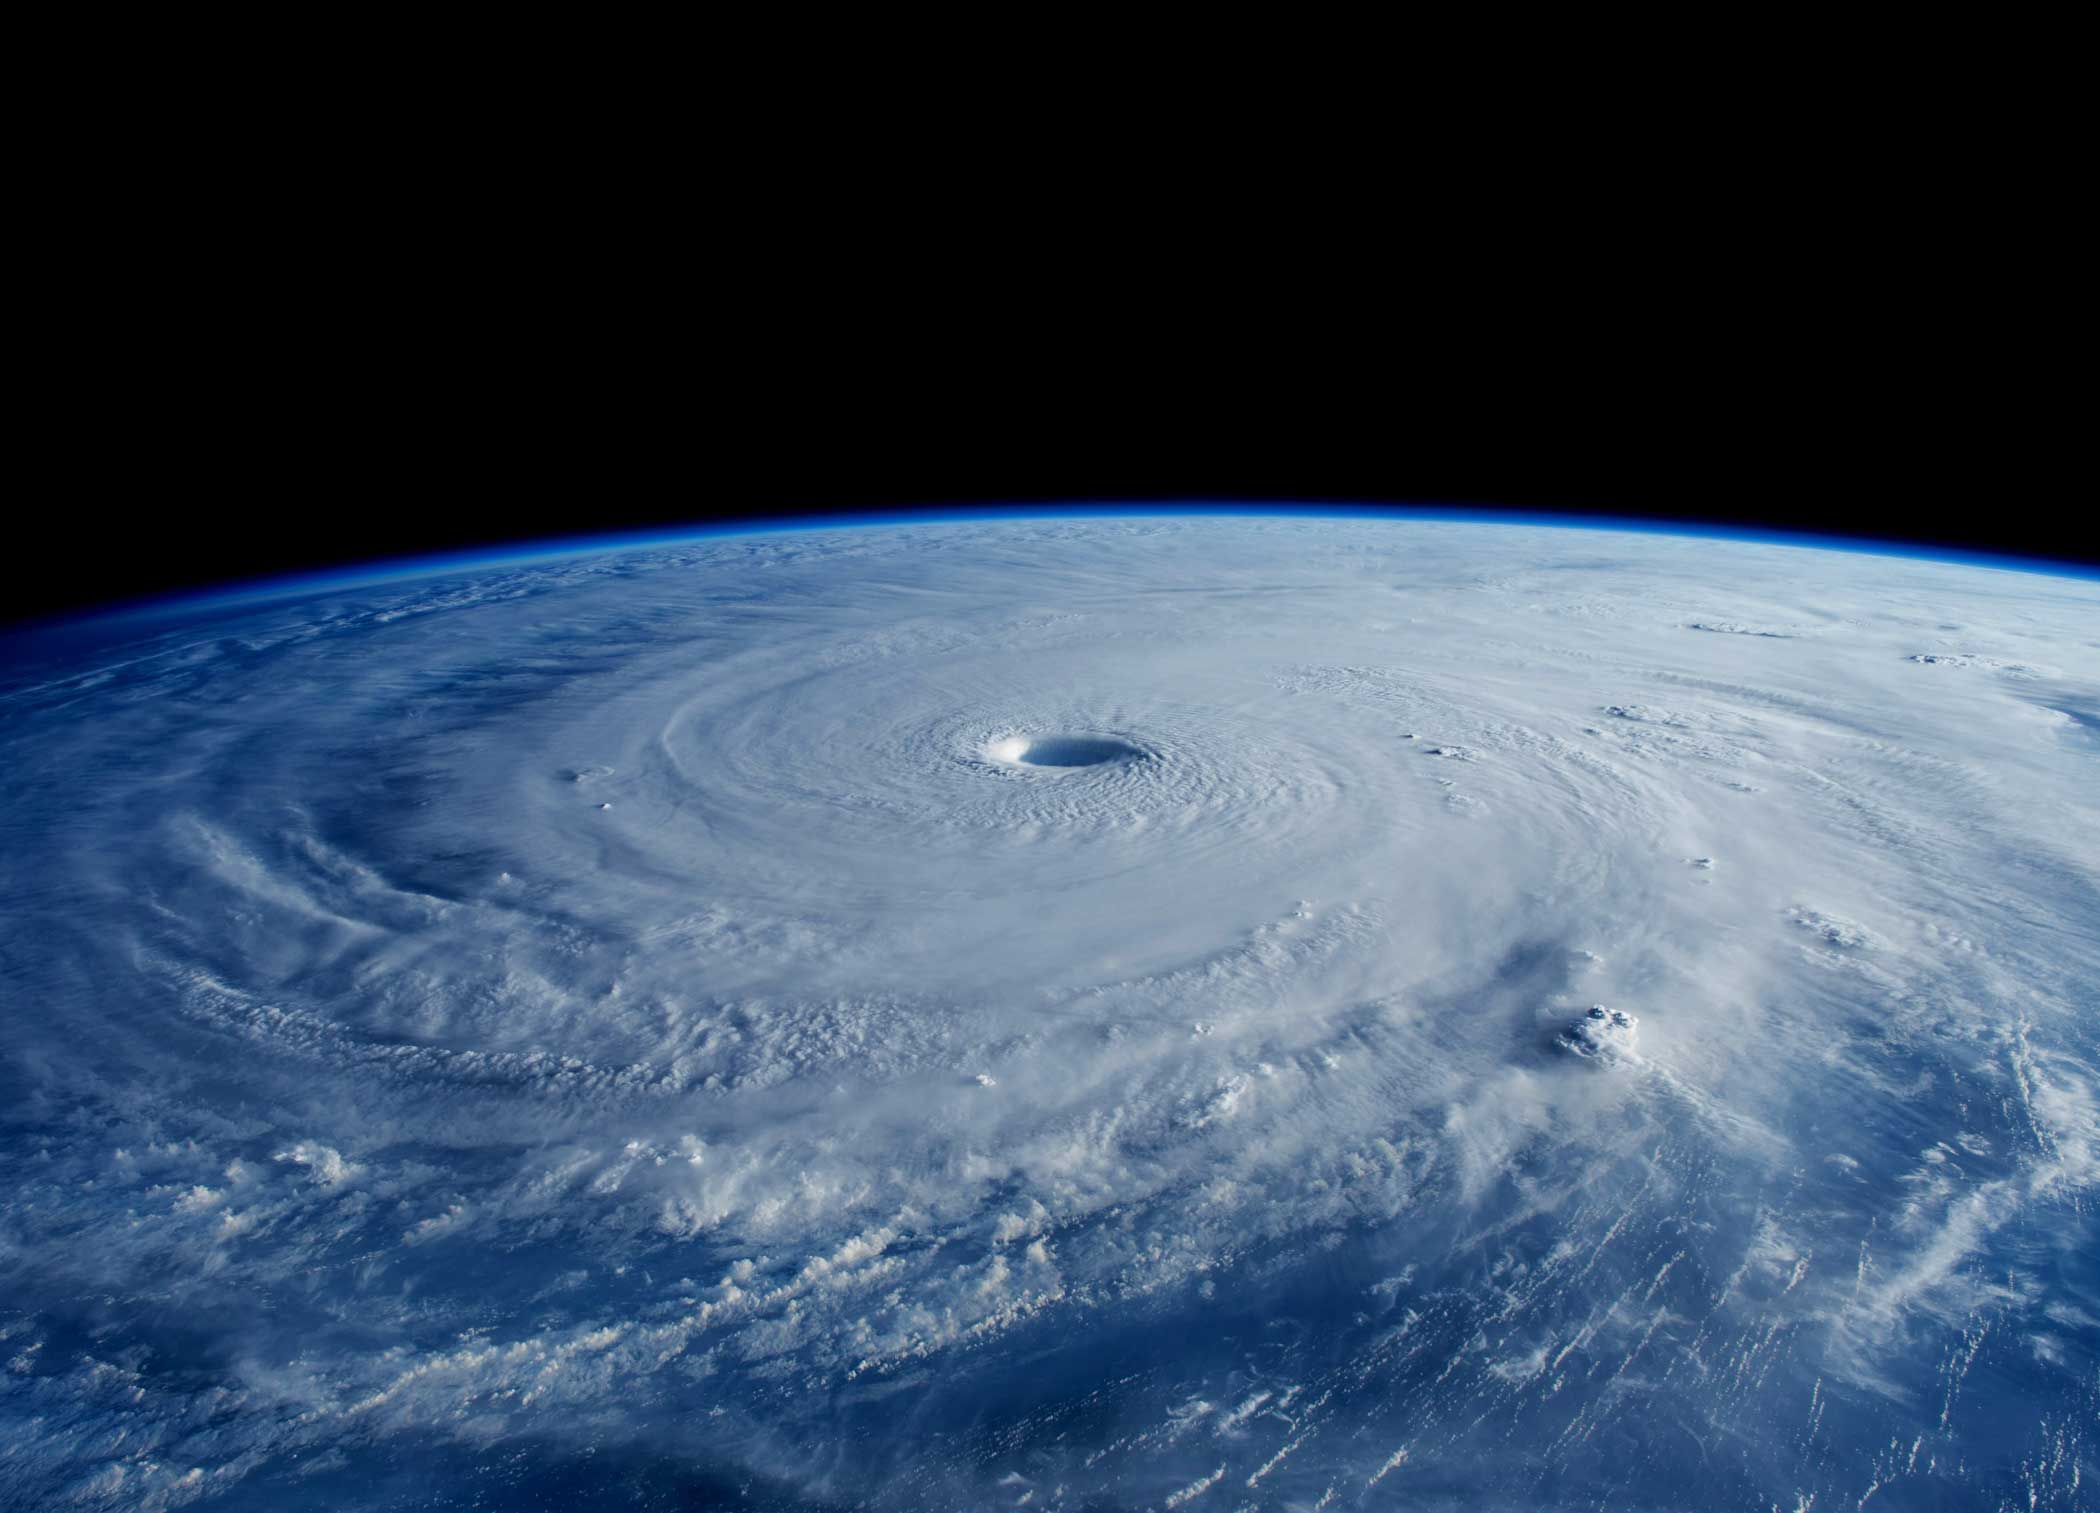 "Super Typhoon Maysak, as seen from aboard the International Space Station on March 31, 2015. NASA Astronaut Terry Virts captured this image and <a href=""https://twitter.com/astroterry/status/583234918509121536?lang=en"" target=""_blank"">tweeted</a> ""The eye of #Maysak typhoon really stands out early in the morning with the shadow being cast deep into the vortex."" His ESA crewmate on station also viewed the storm and wrote, ""Commands respect even from #space..."""